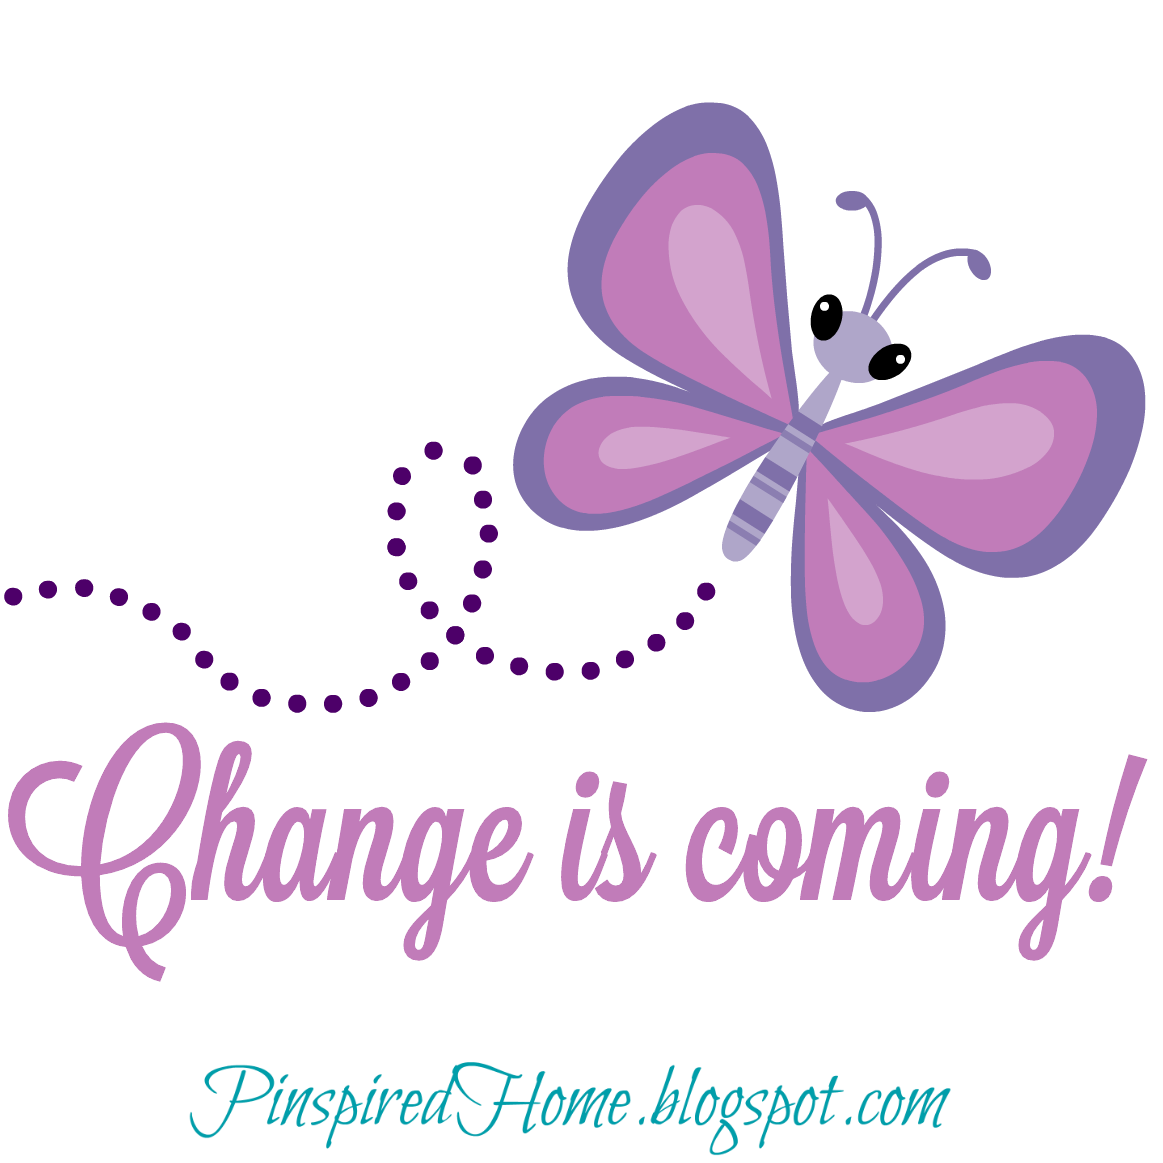 http://pinspiredhome.blogspot.com/2014/07/change-is-coming.html